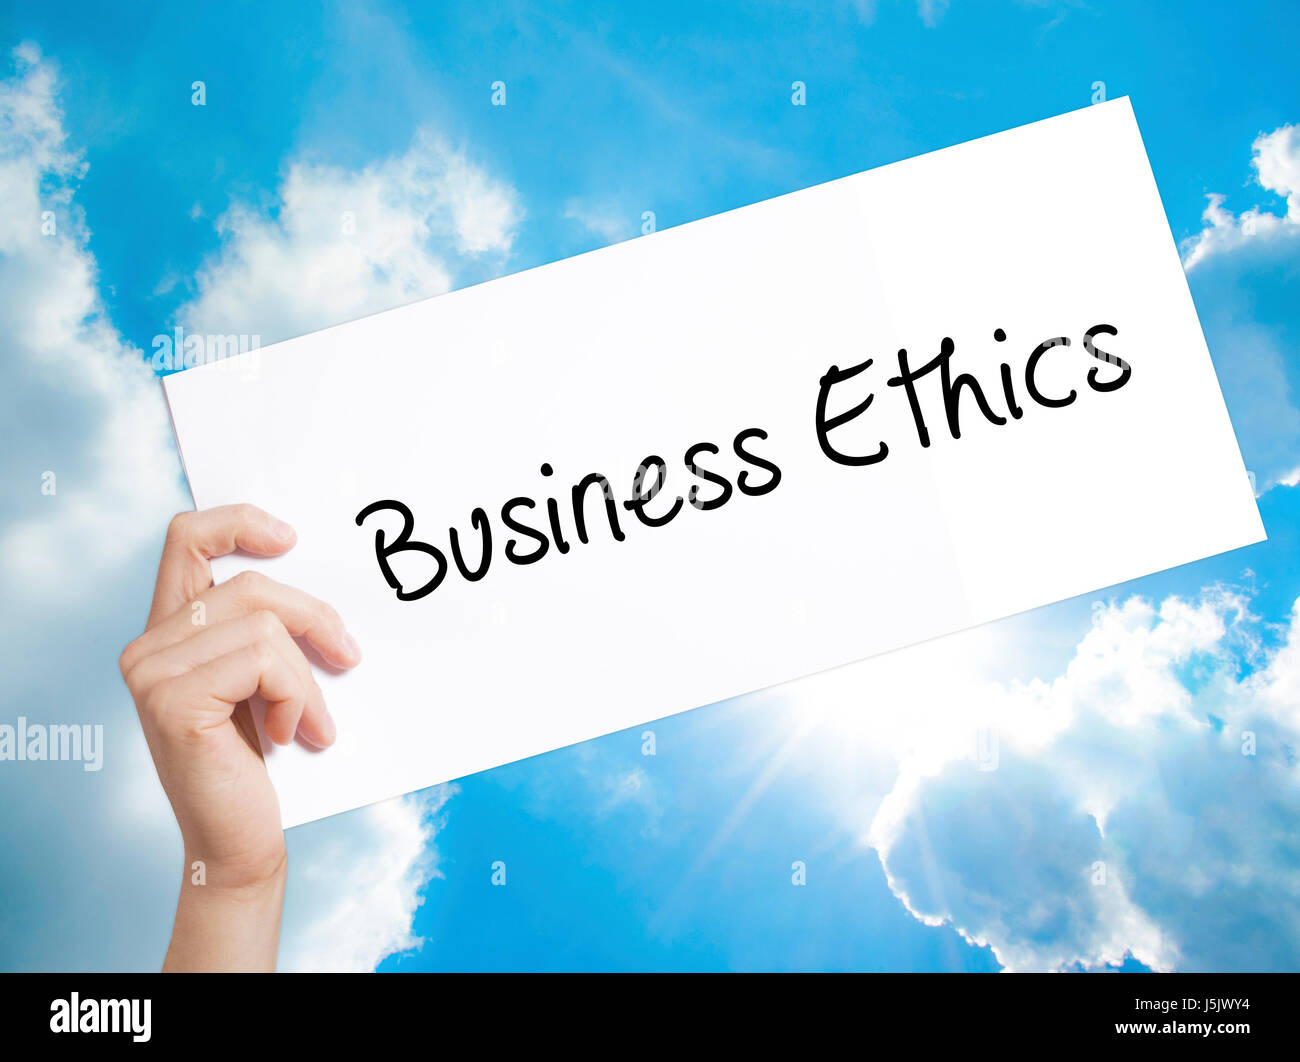 business ethics sign on white paper man hand holding paper  business ethics sign on white paper man hand holding paper text isolated on sky background business concept stock photo